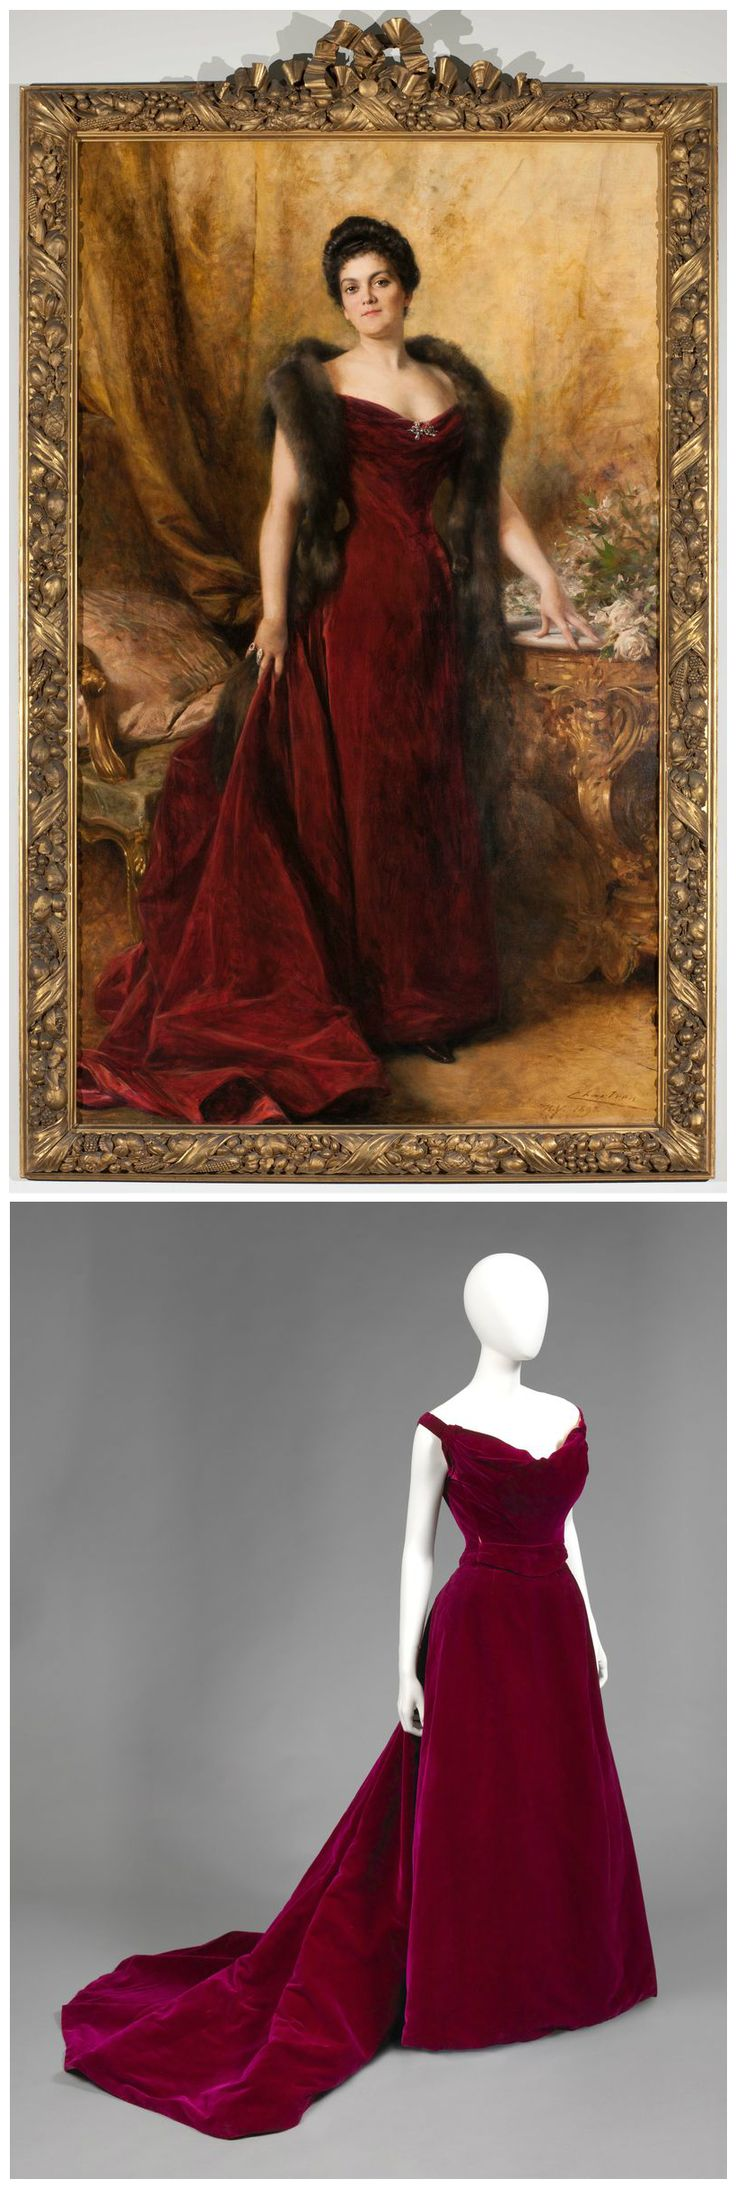 Portrait of Edith Kingdon Gould, by Chartran, 1898 (above), showing the sitter wearing a red velvet evening gown, by Worth, also made in 1898 (below). Photos via the Irenebrination blog.